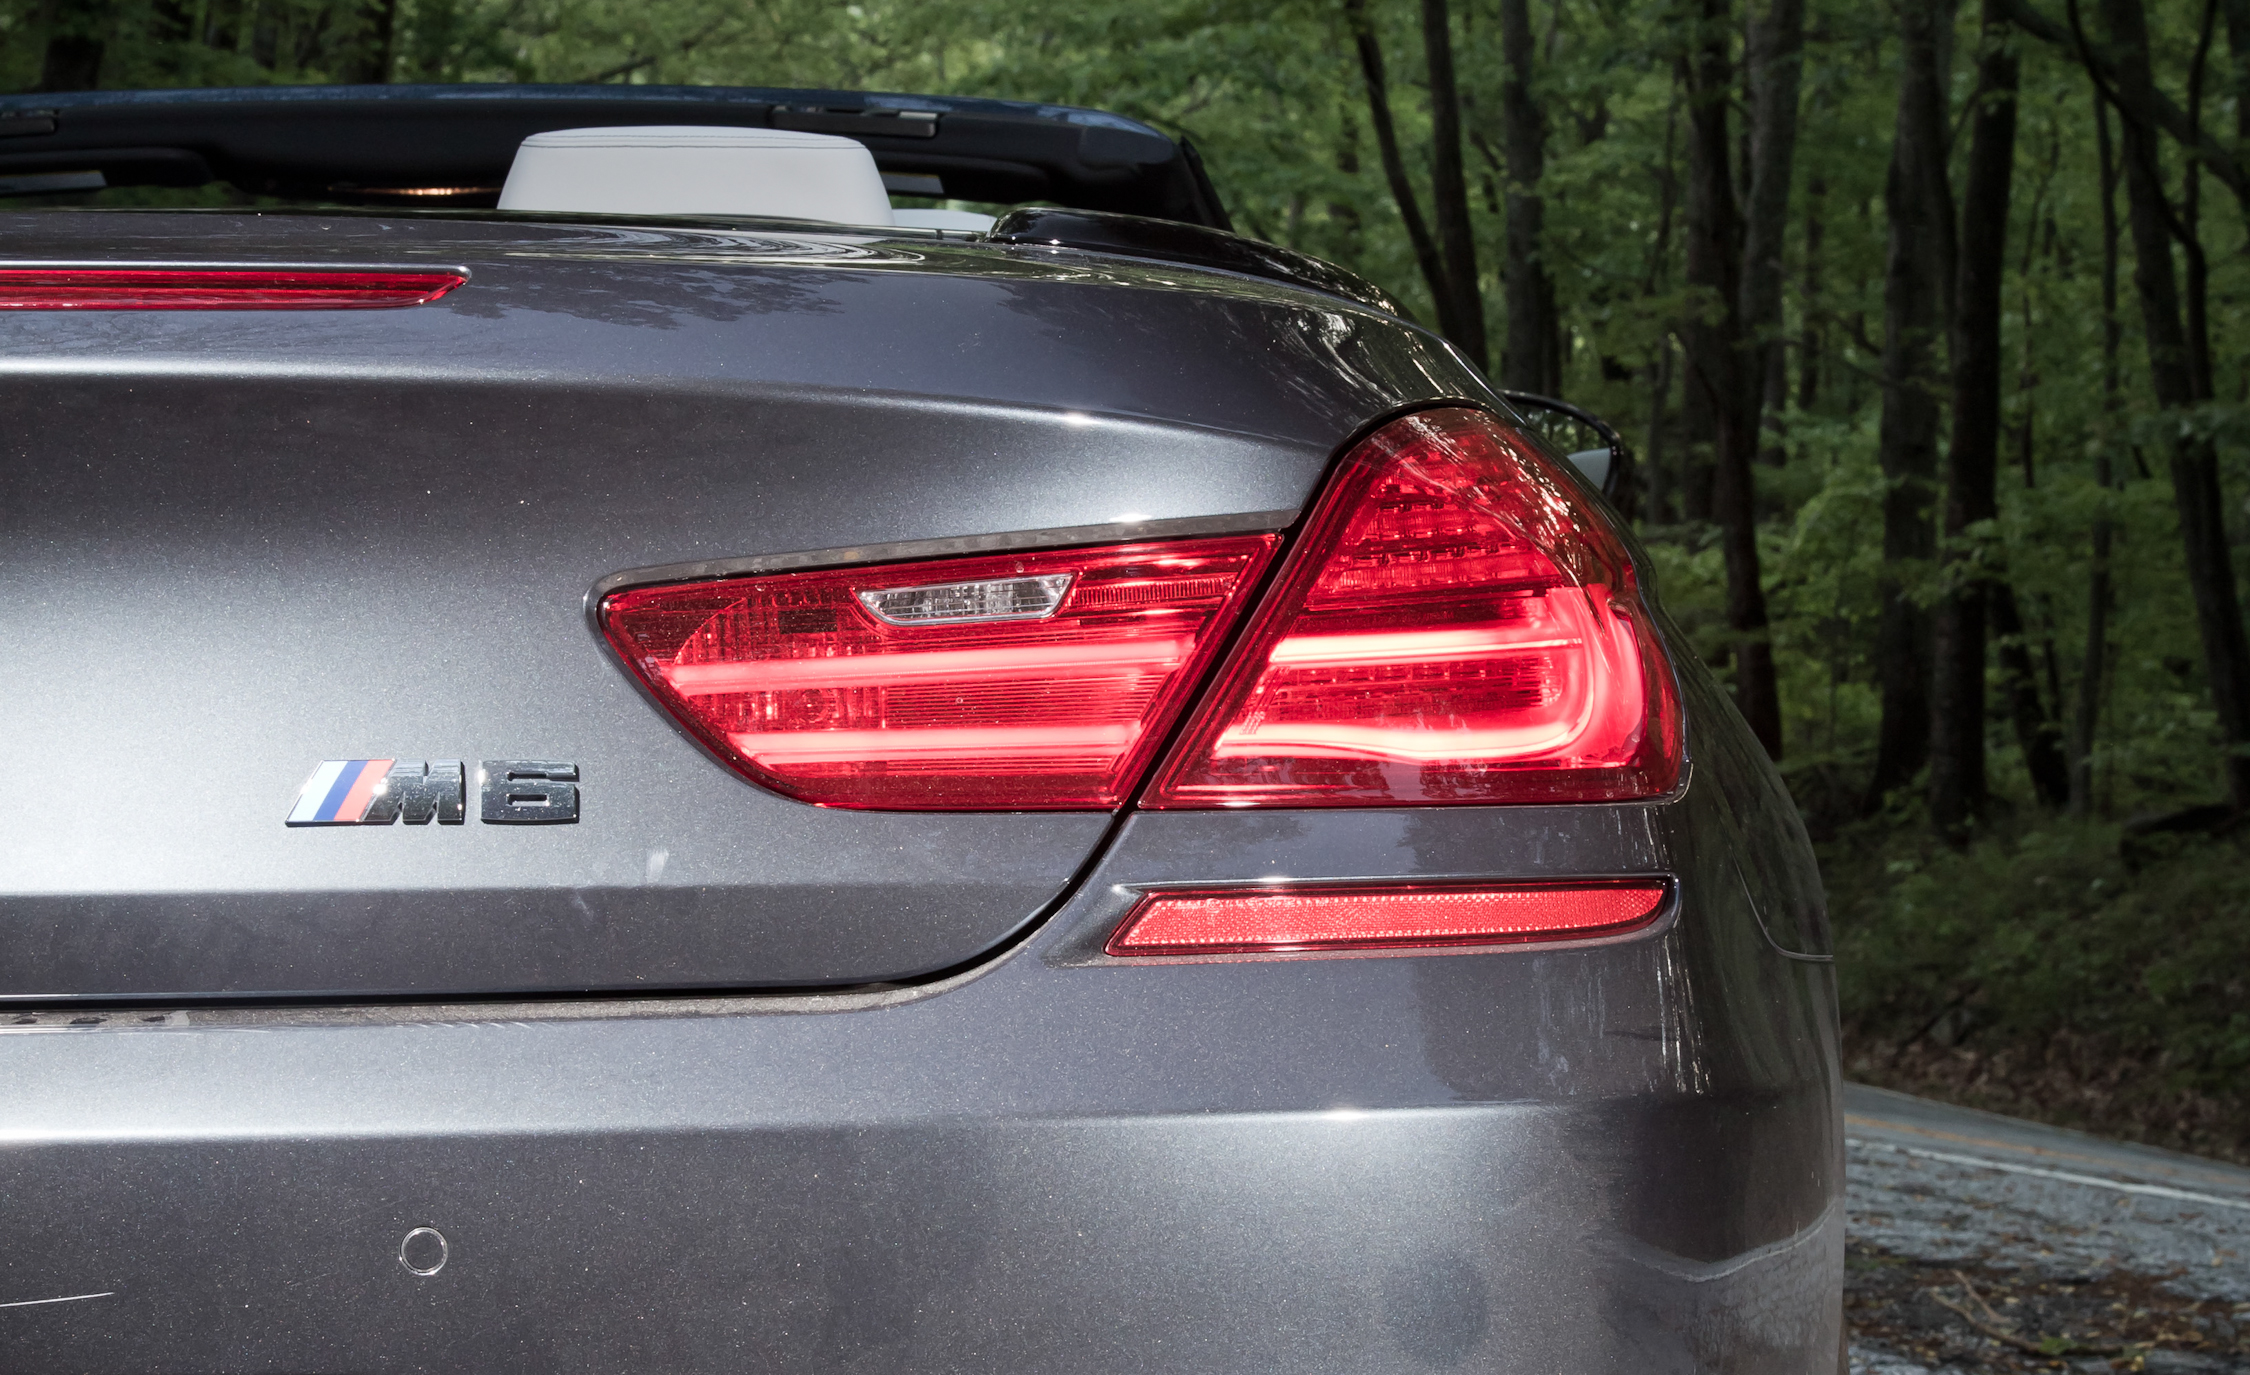 2012 BMW M6 Convertible Exterior View Taillight (Photo 6 of 30)